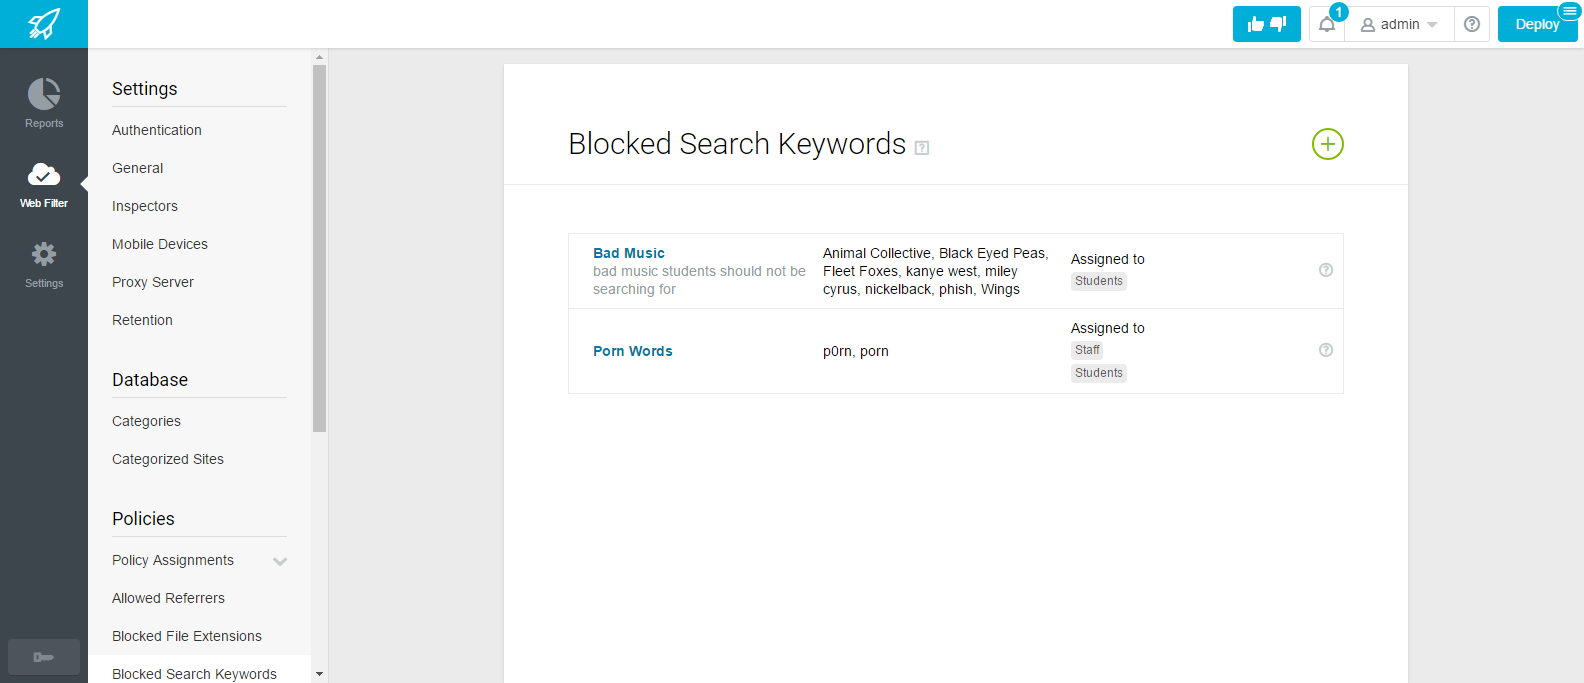 Blocked Search Keywords Basics | Lightspeed Systems Community Site